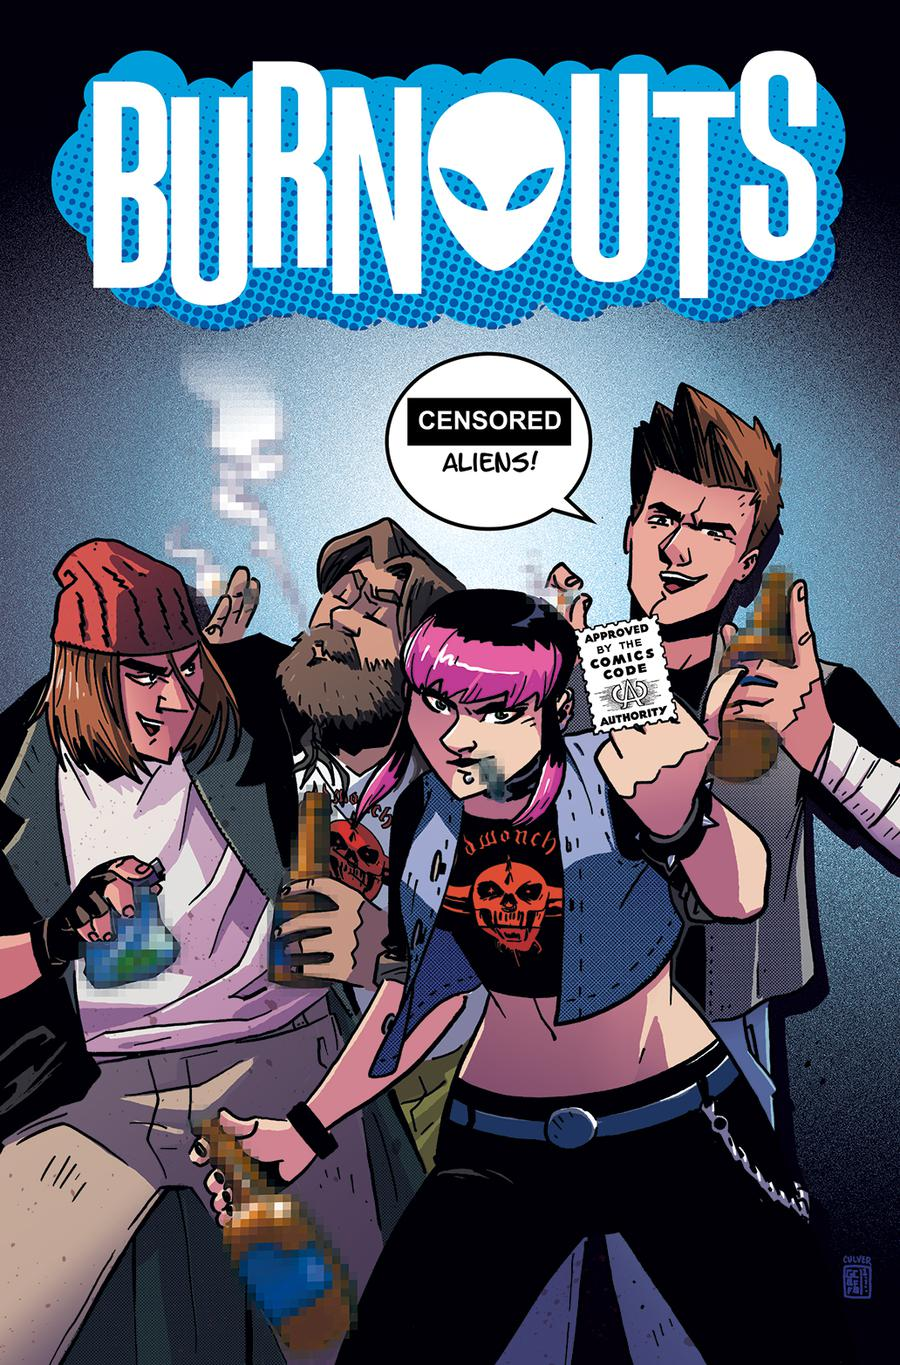 Burnouts #1 Cover B Variant Geoffo CBLDF Charity Censored Cover